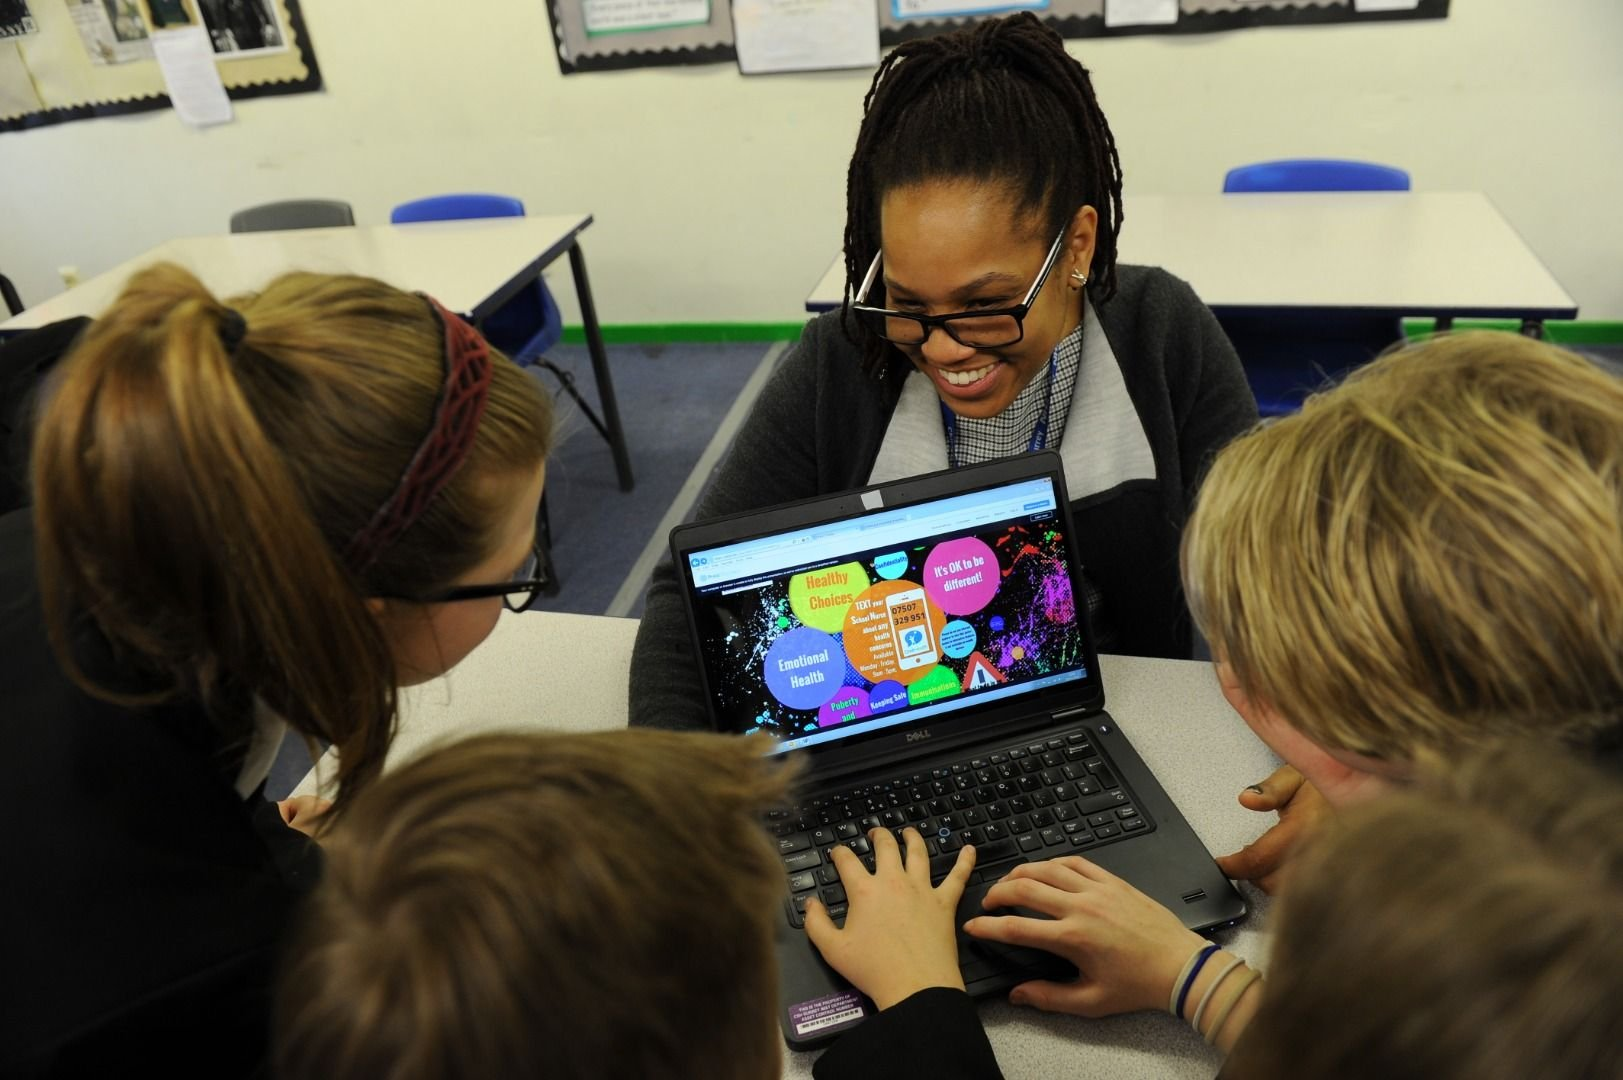 School Nurse showing students the Digital health and wellbeing resource